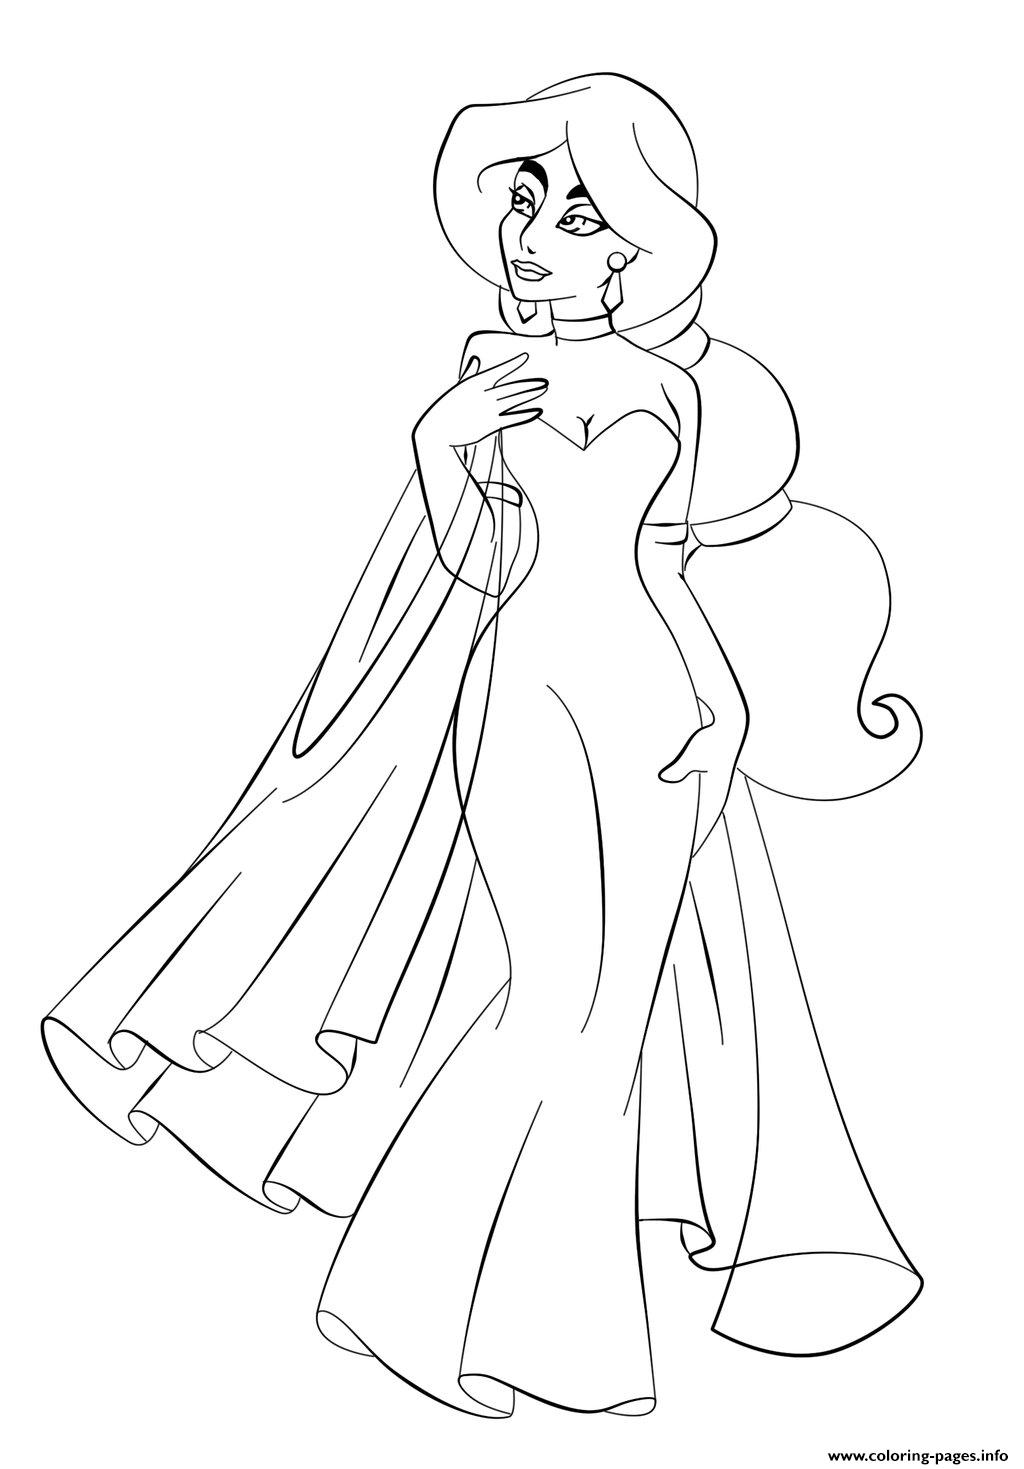 Jasmine In Wedding Dress Disney Princess S6993 Coloring Princess Dress Coloring Pages Free Coloring Sheets